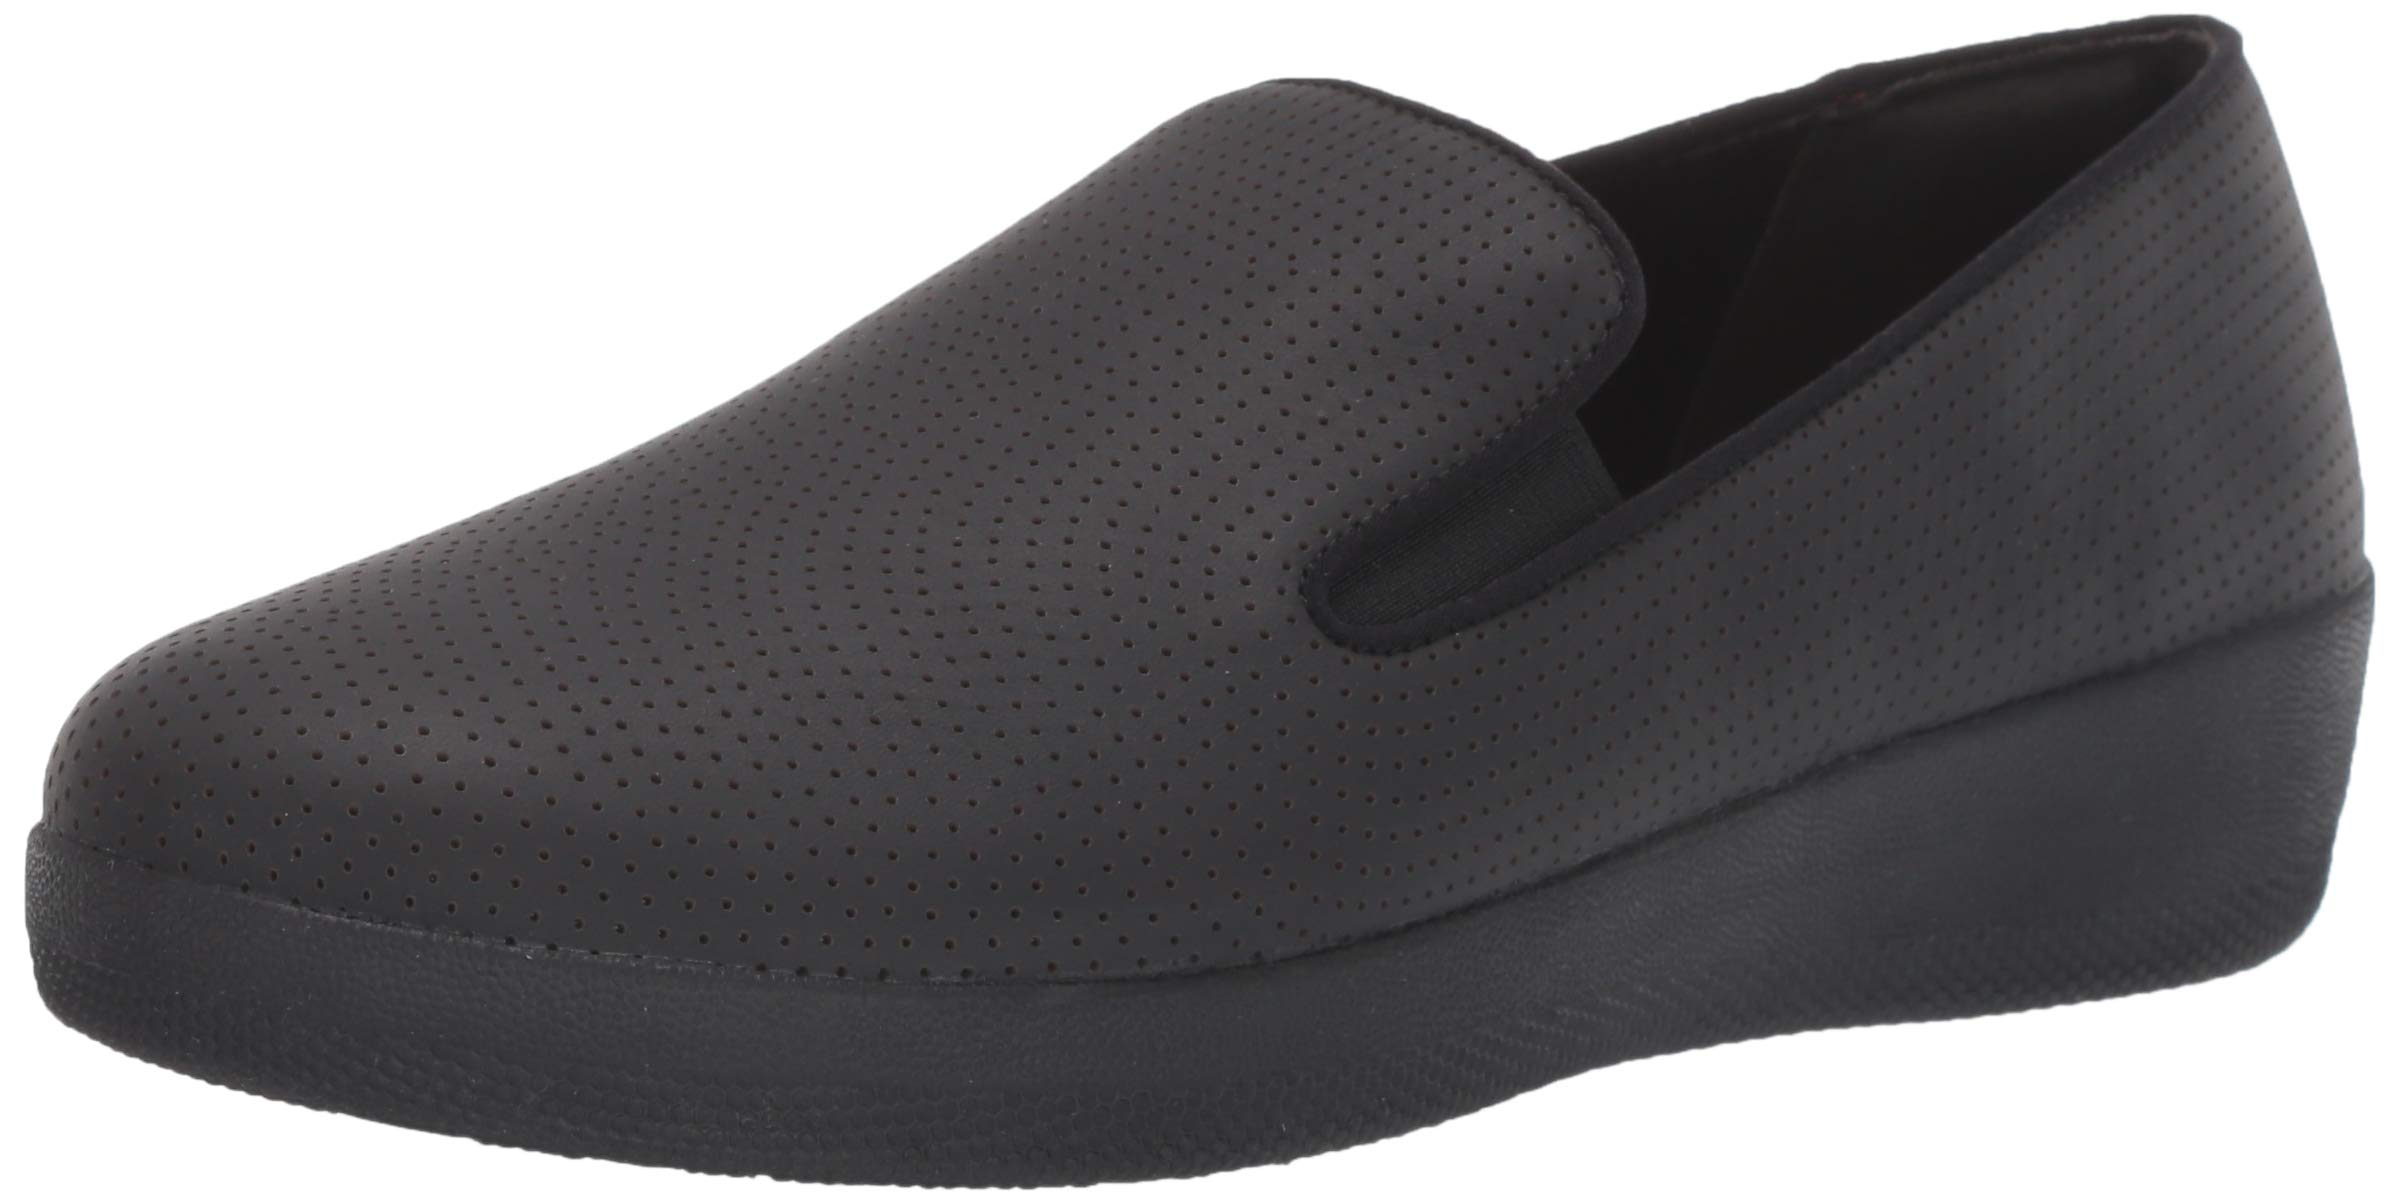 FITFLOP Women's Superskate Perforated Skate Shoe Black 7.5 M US by FITFLOP